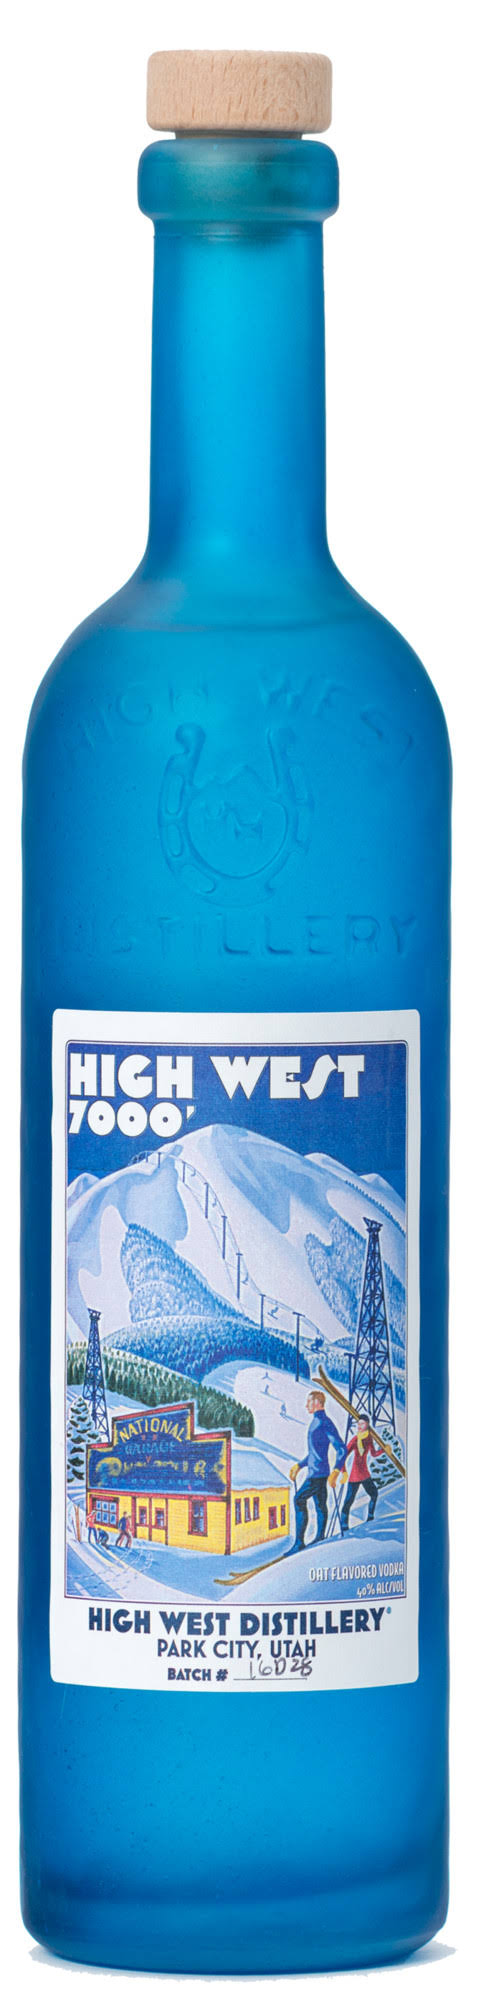 High West Vodka 7000 - 750 ml bottle